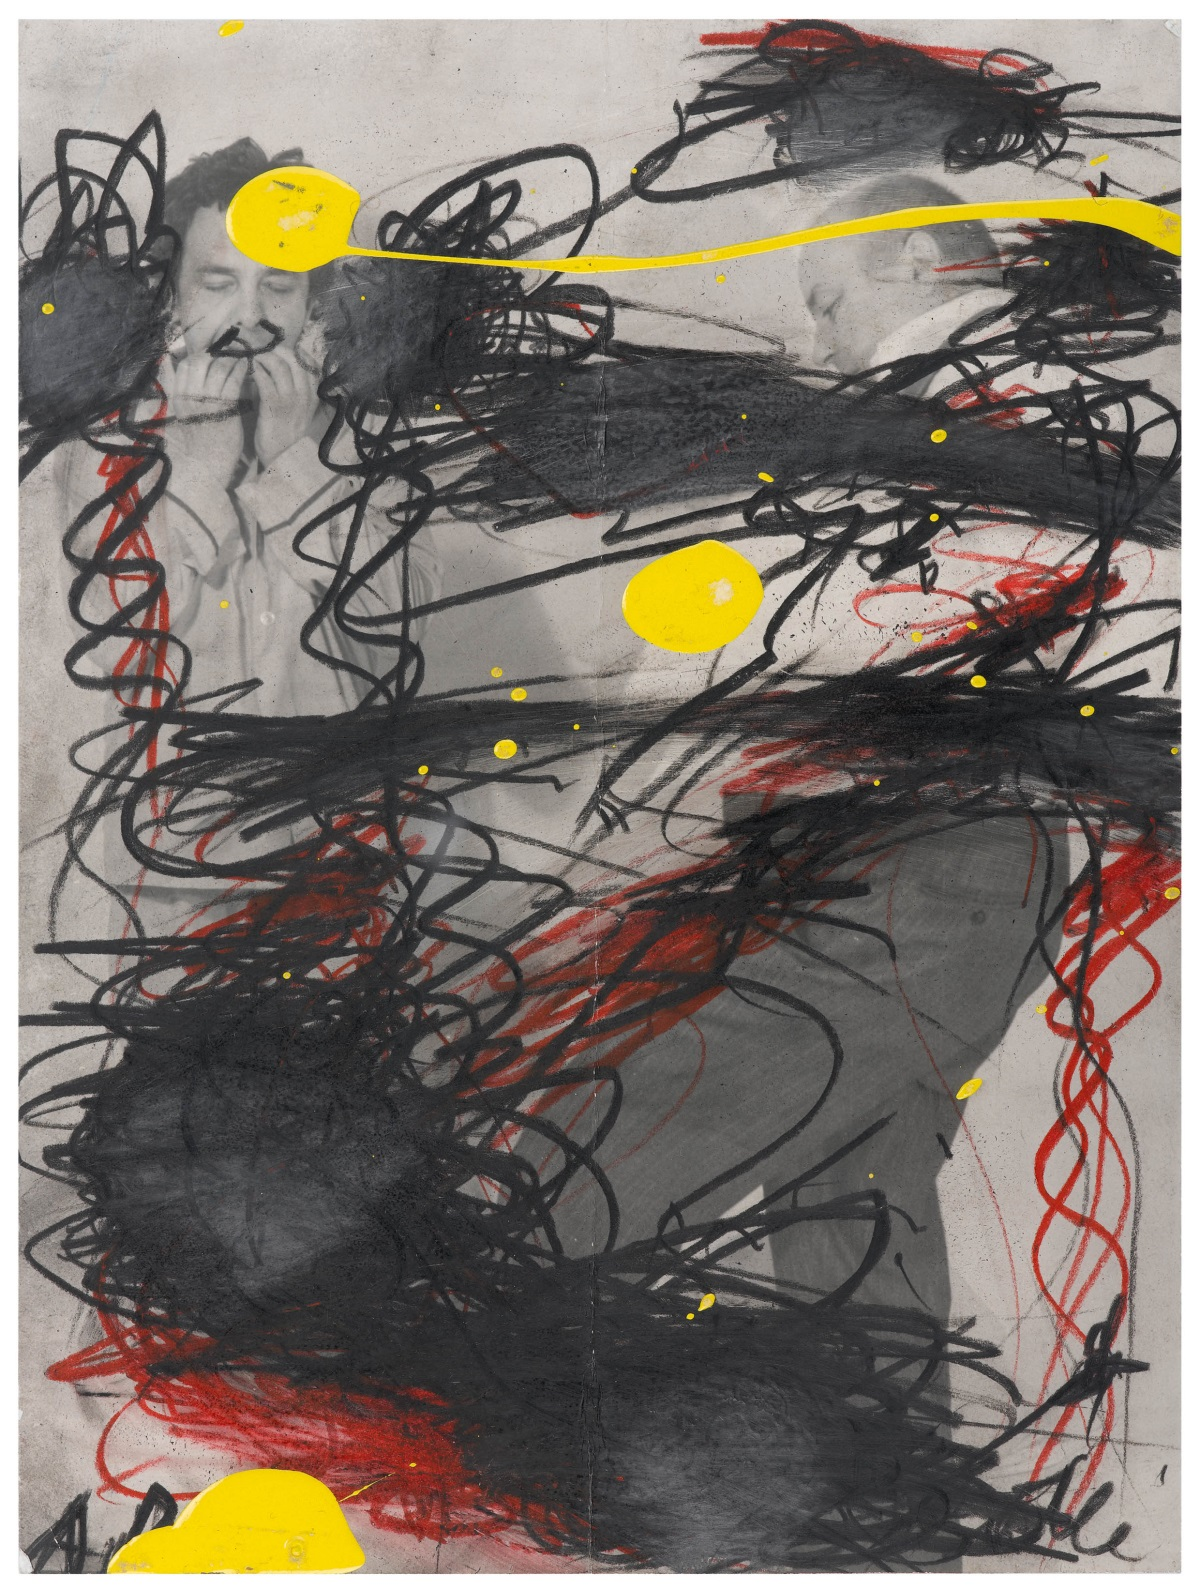 HWL-Dieter-Roth-and-Arnulf-Rainer-Untitled-1975-low